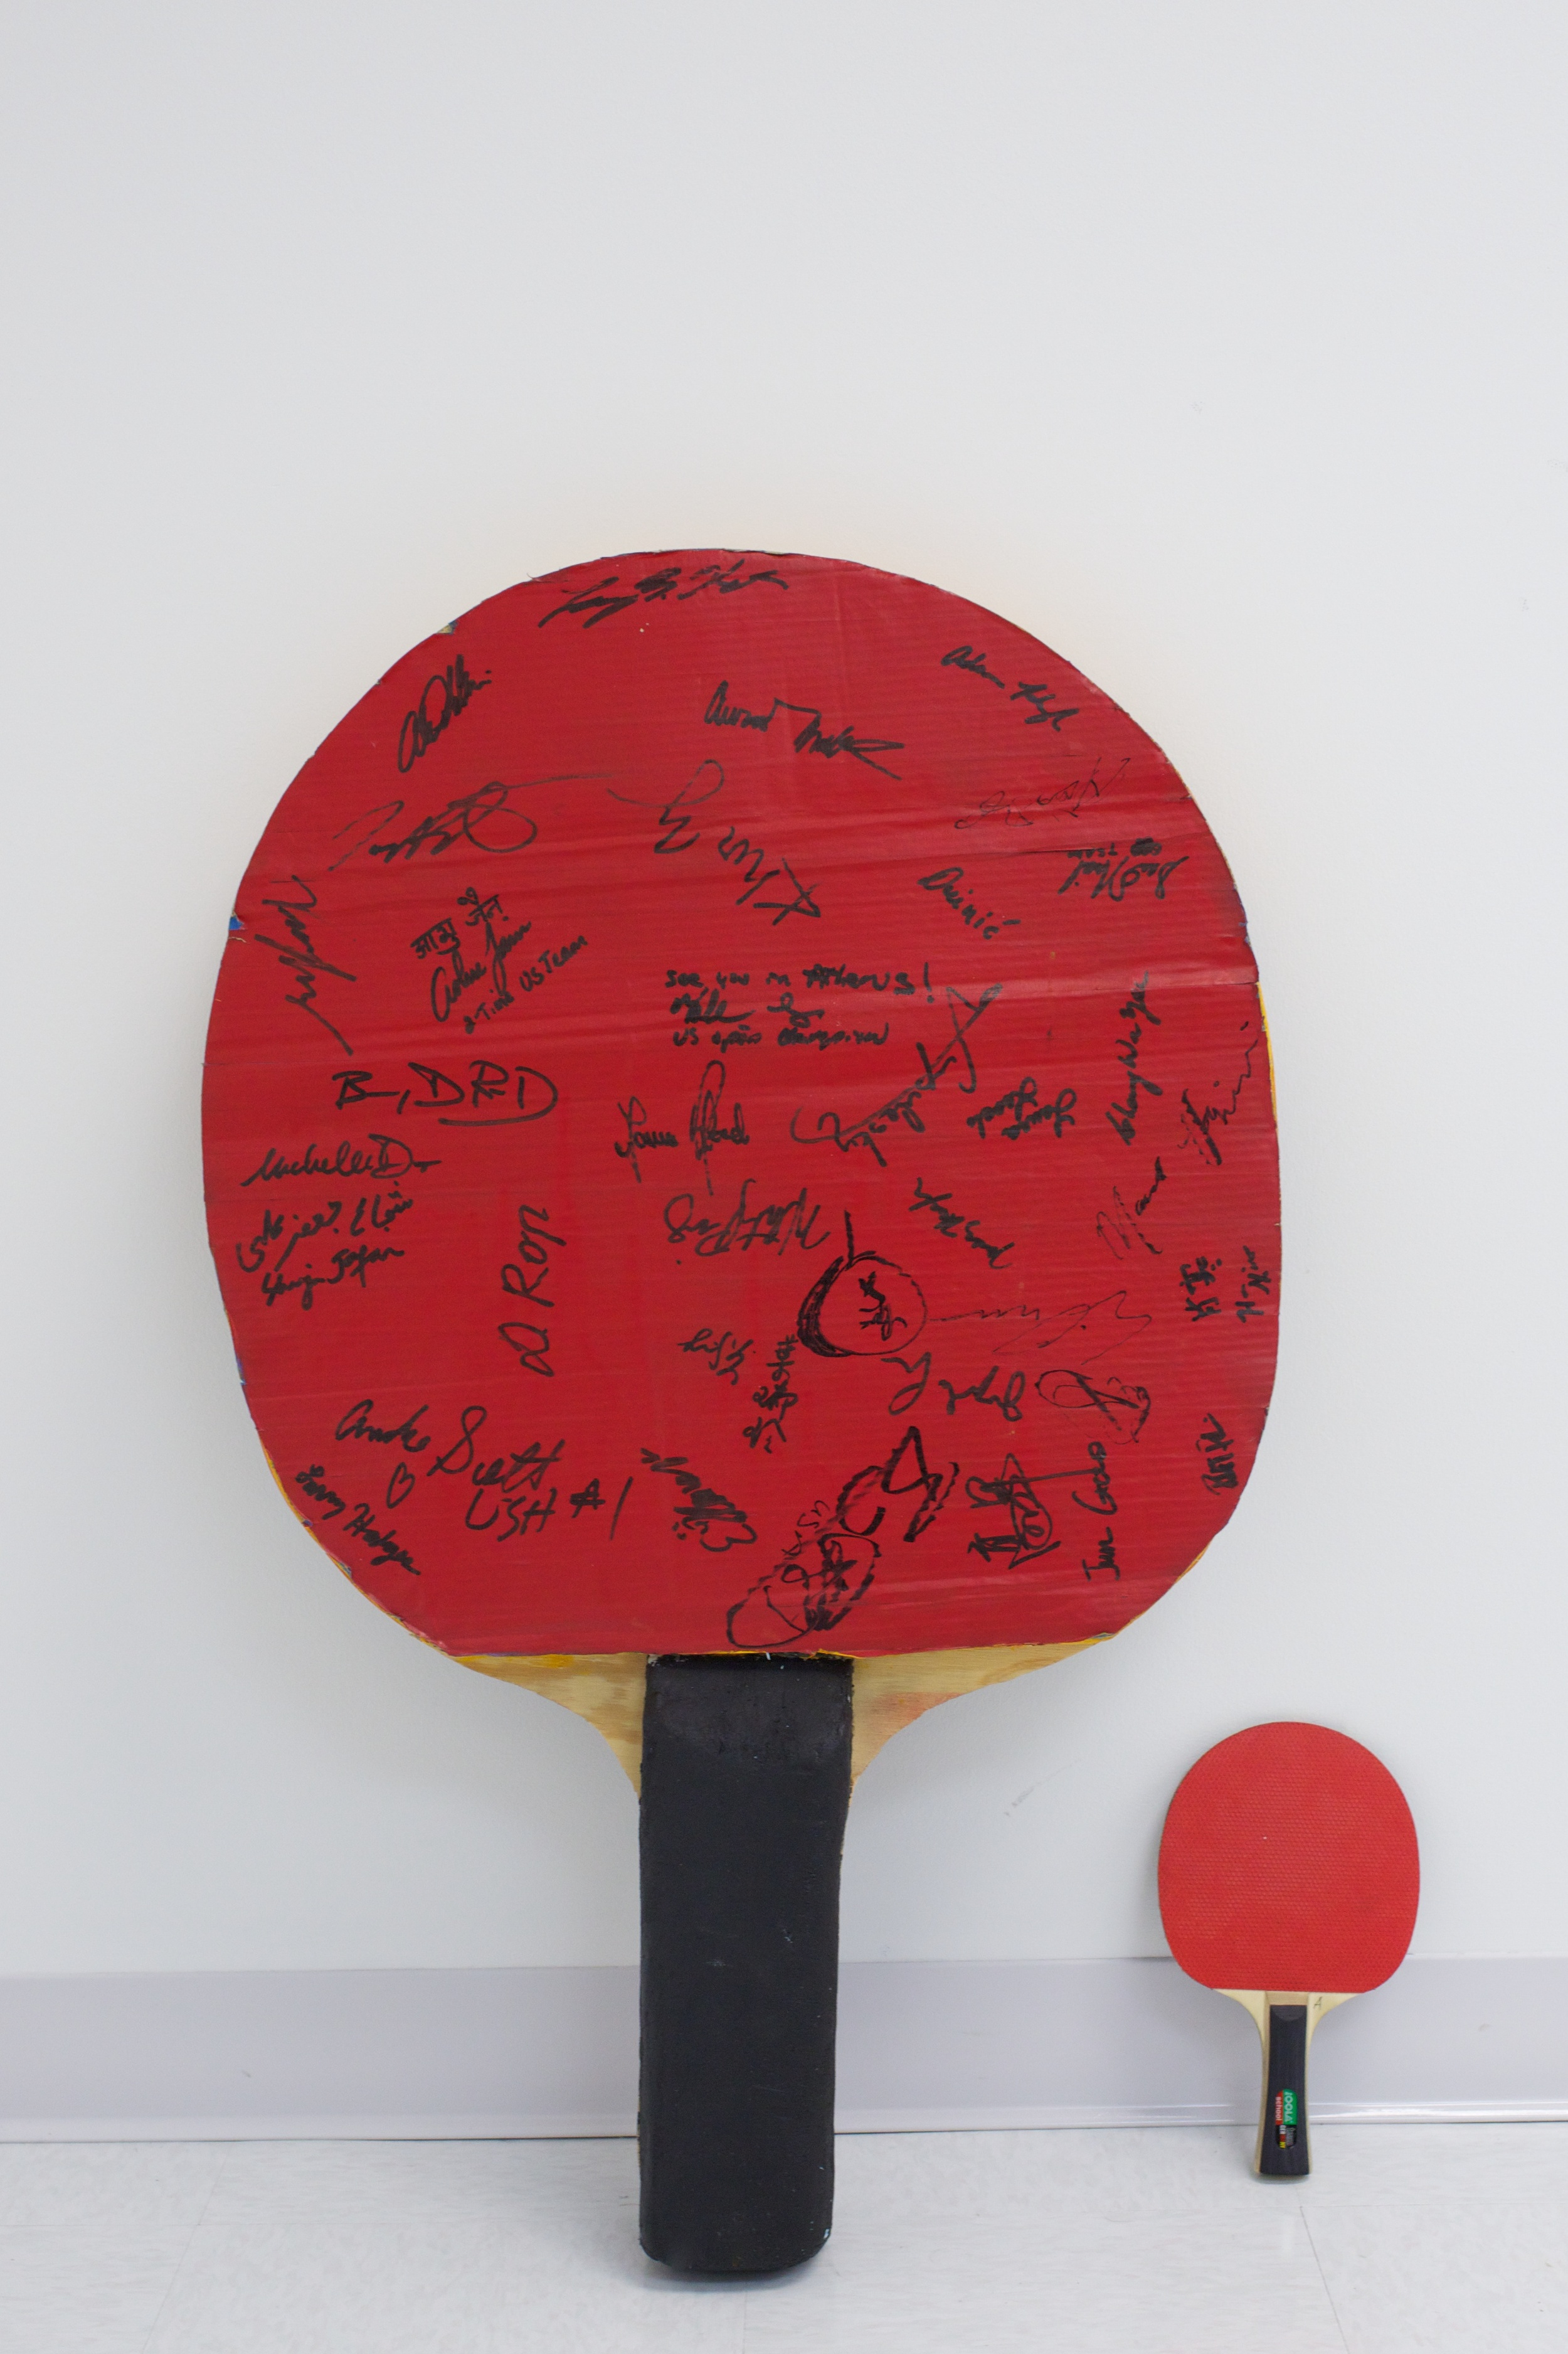 2004 US Olympic Table Tennis Trials Oversized Racket